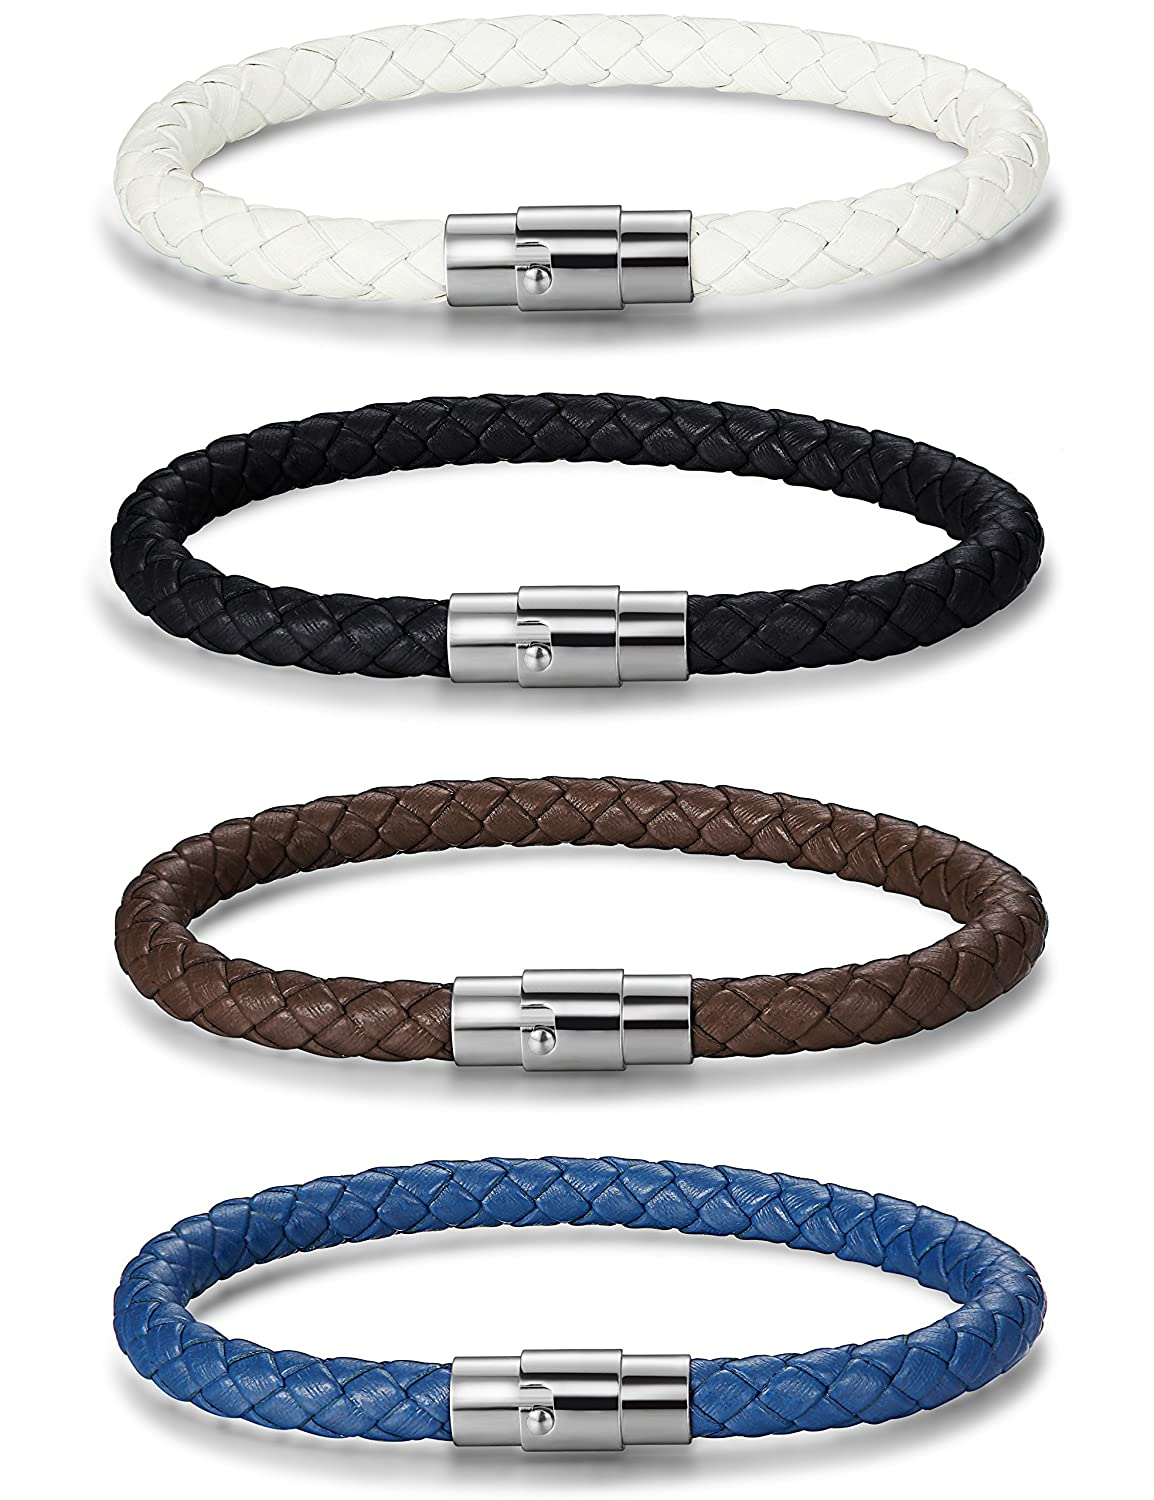 FUNRUN JEWELRY 3-4PCS Stainless Steel Leather Bracelet for Men Women Braided Rope Wrist Cuff Magnetic Clasp 6MM 7.5-8.5 Inches PSLB2010V19.5